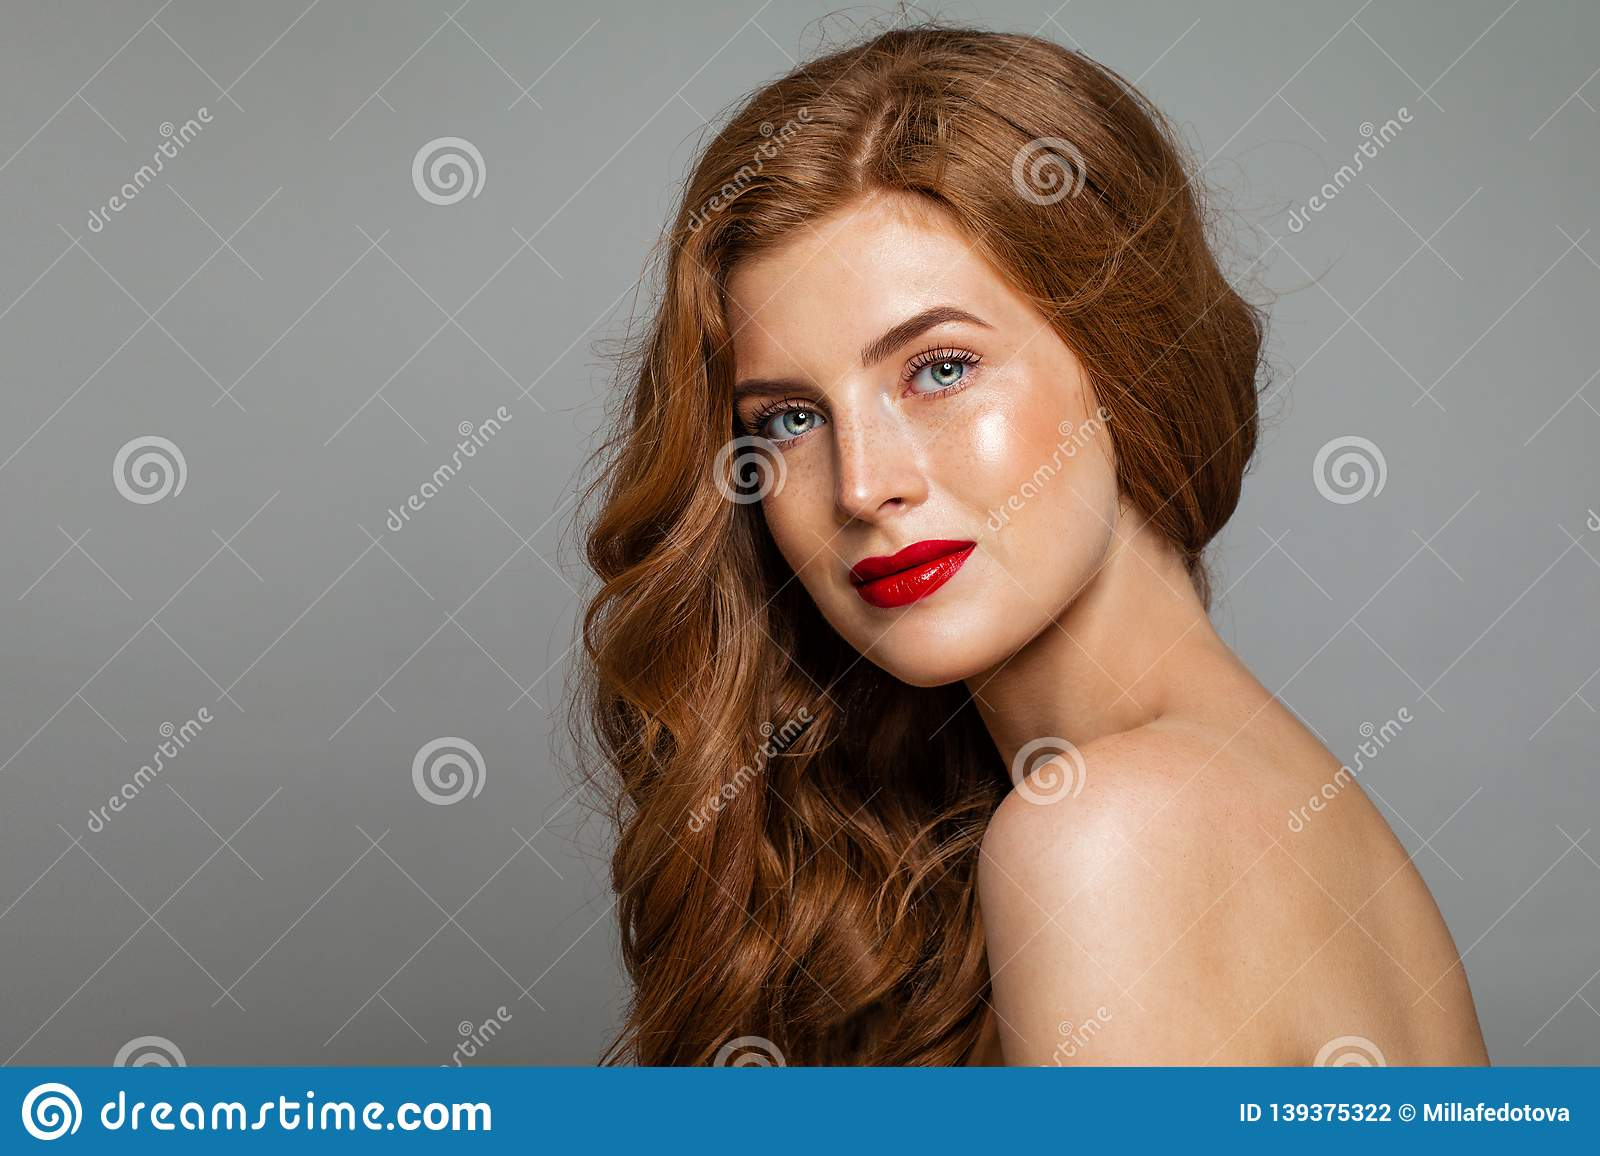 Pretty Redhead Woman Face. Red Head Girl With Curly Hairstyle ...